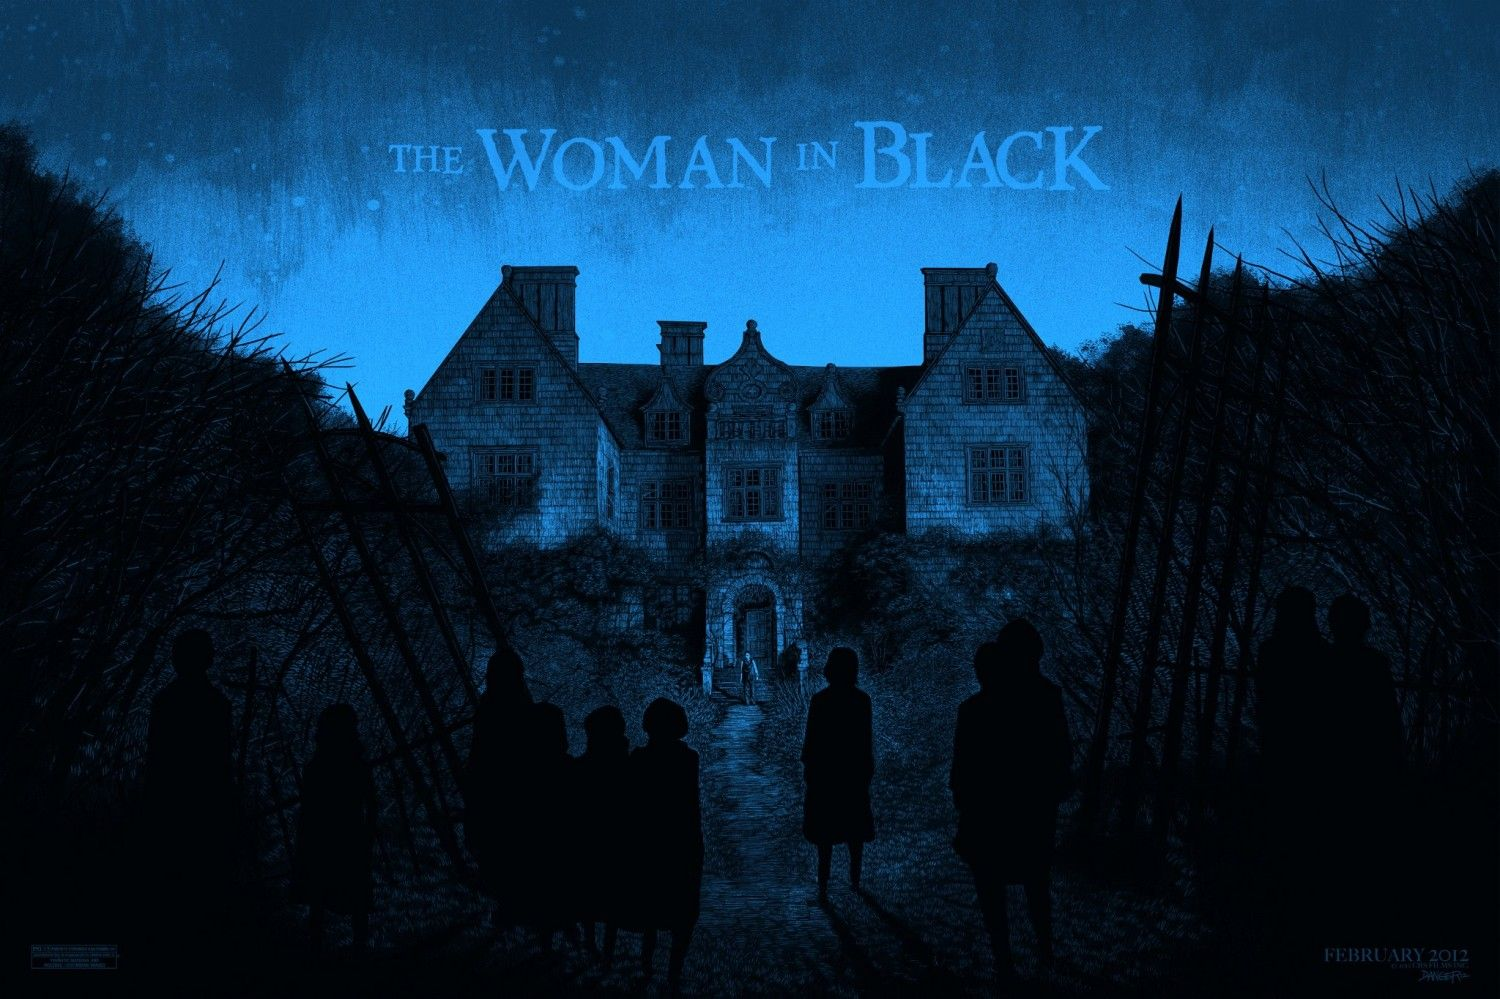 New Featurettes, Clips and Poster for THE WOMAN IN BLACK ...